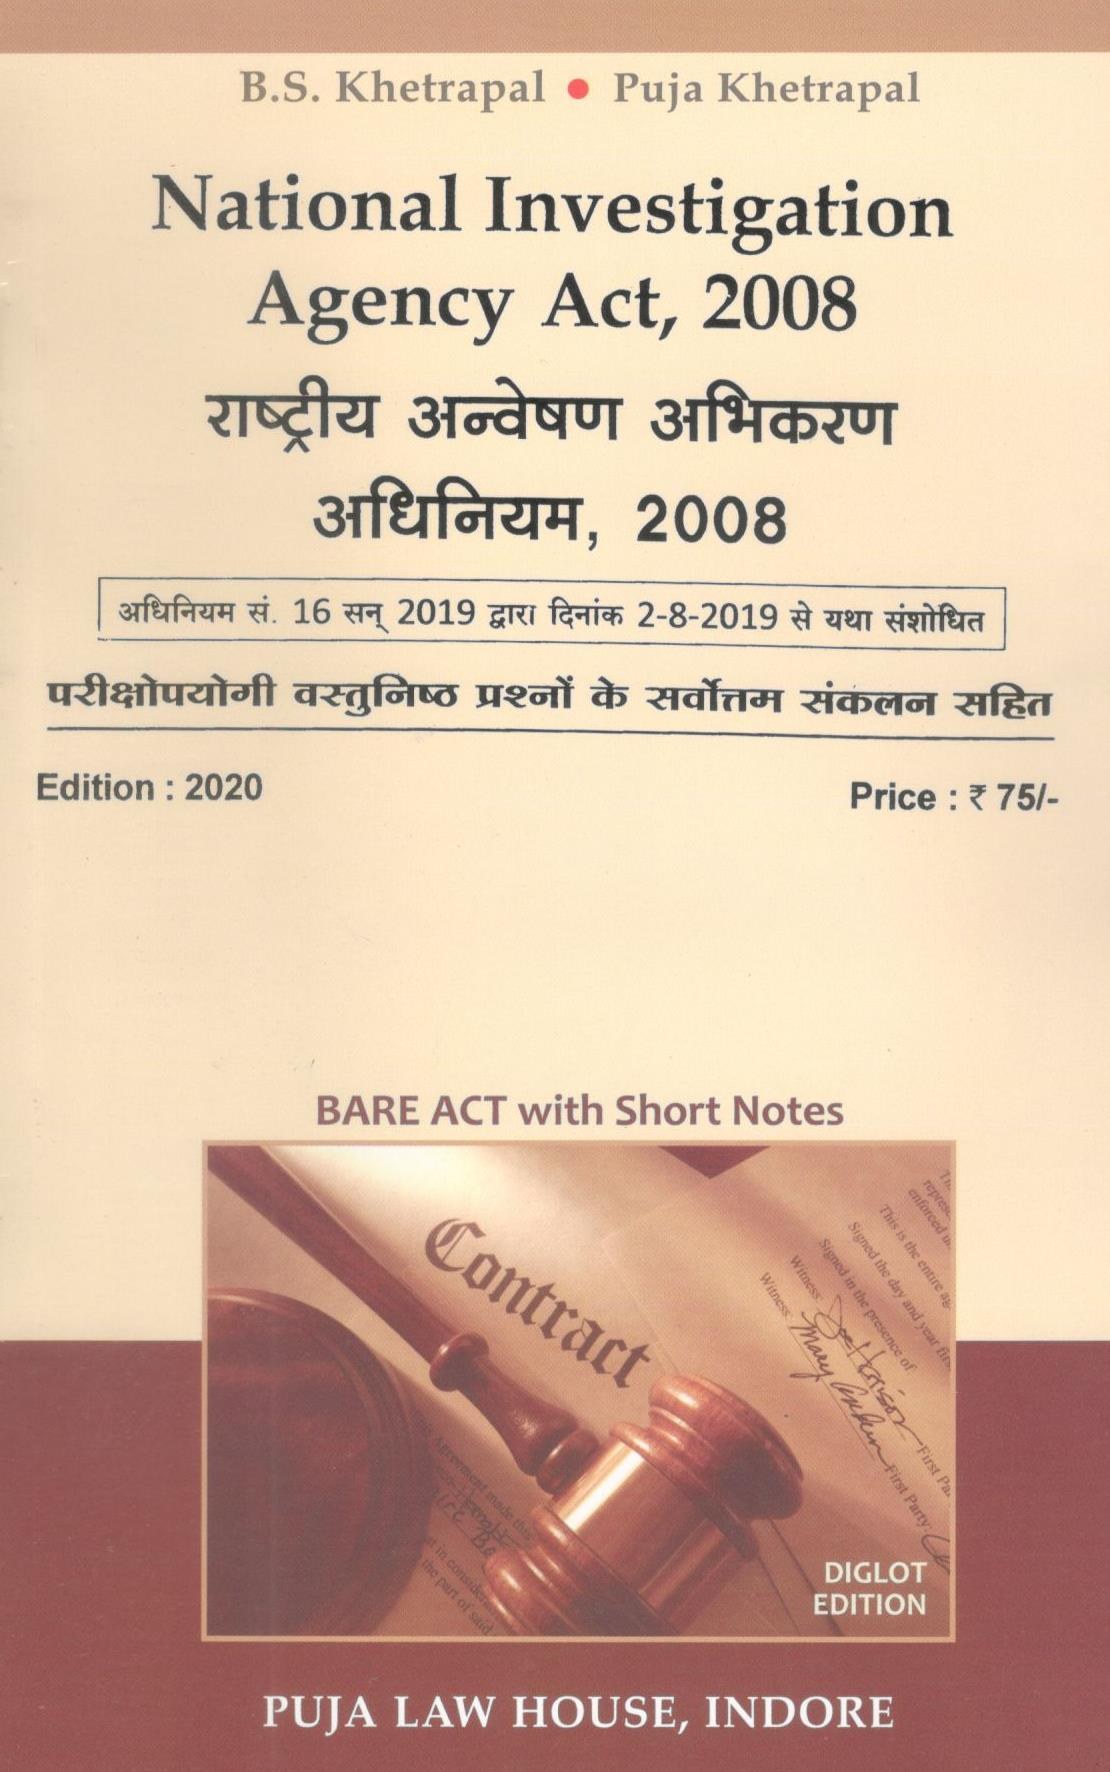 राष्ट्रीय अन्वेषण अभिकरण अधिनियम, 2008 / National Investigation Agency Act, 2008